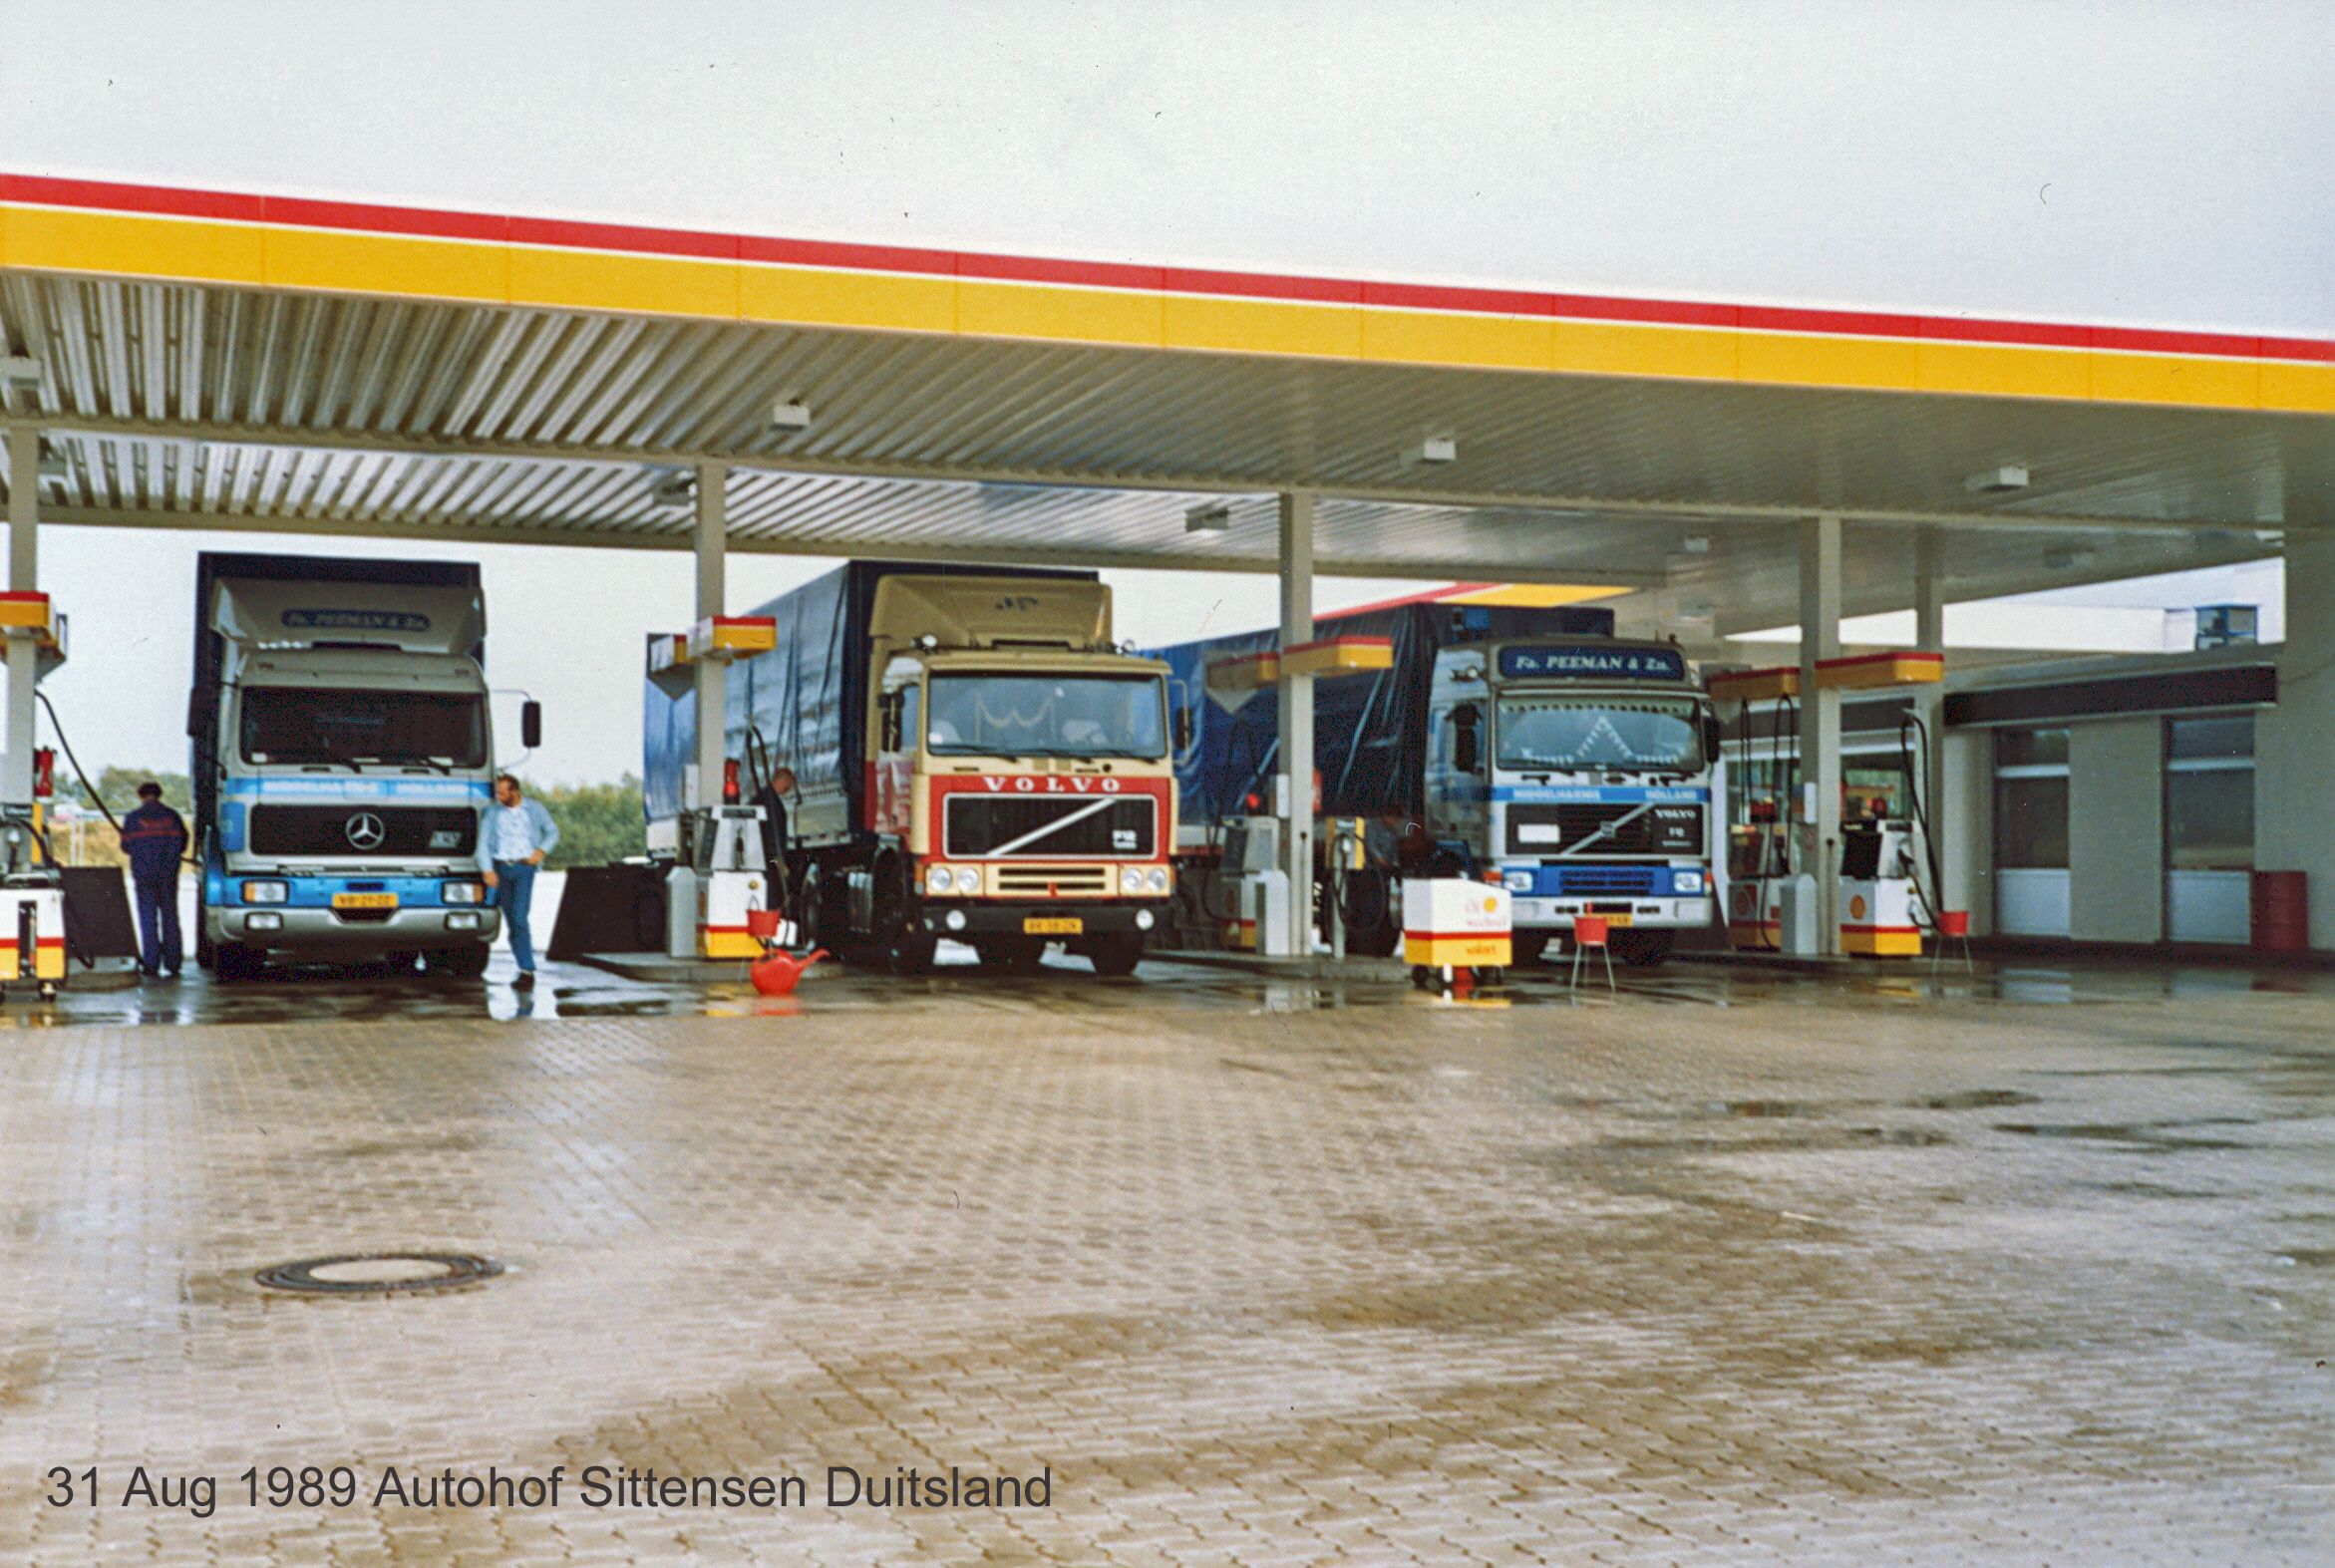 Peeman-Trucks-Gasoline-stop-at-Autohof-Sittensen-Germany--31-aug-1989